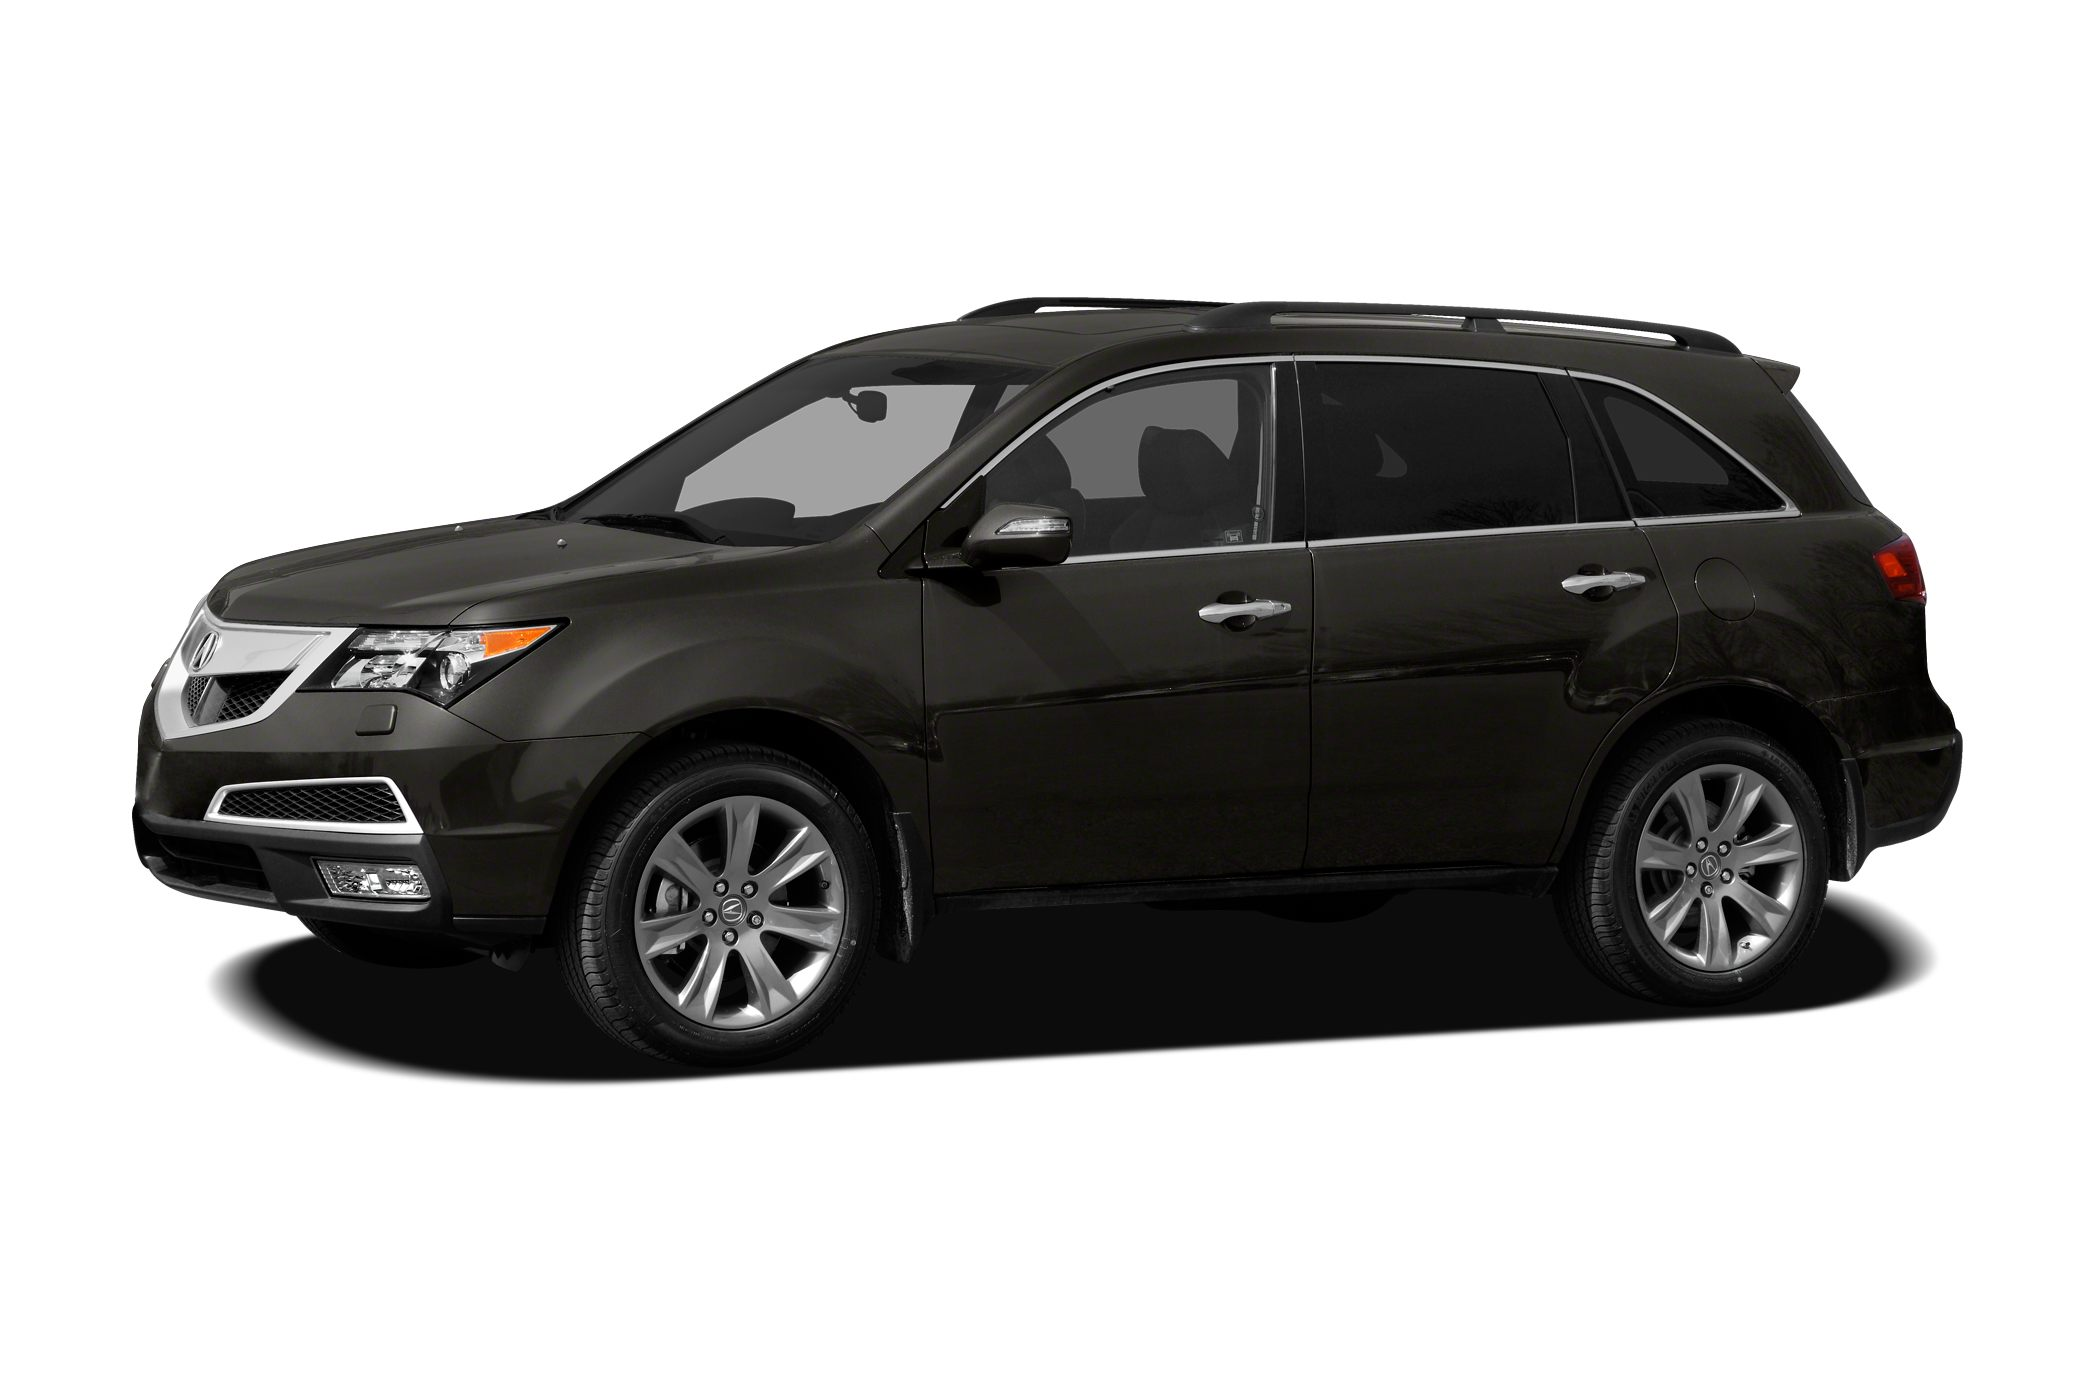 2011 Acura MDX 37  WHEN IT COMES TO EXCELLENCE IN USED CAR SALESYOU KNOW YOURE AT STAR AUTO